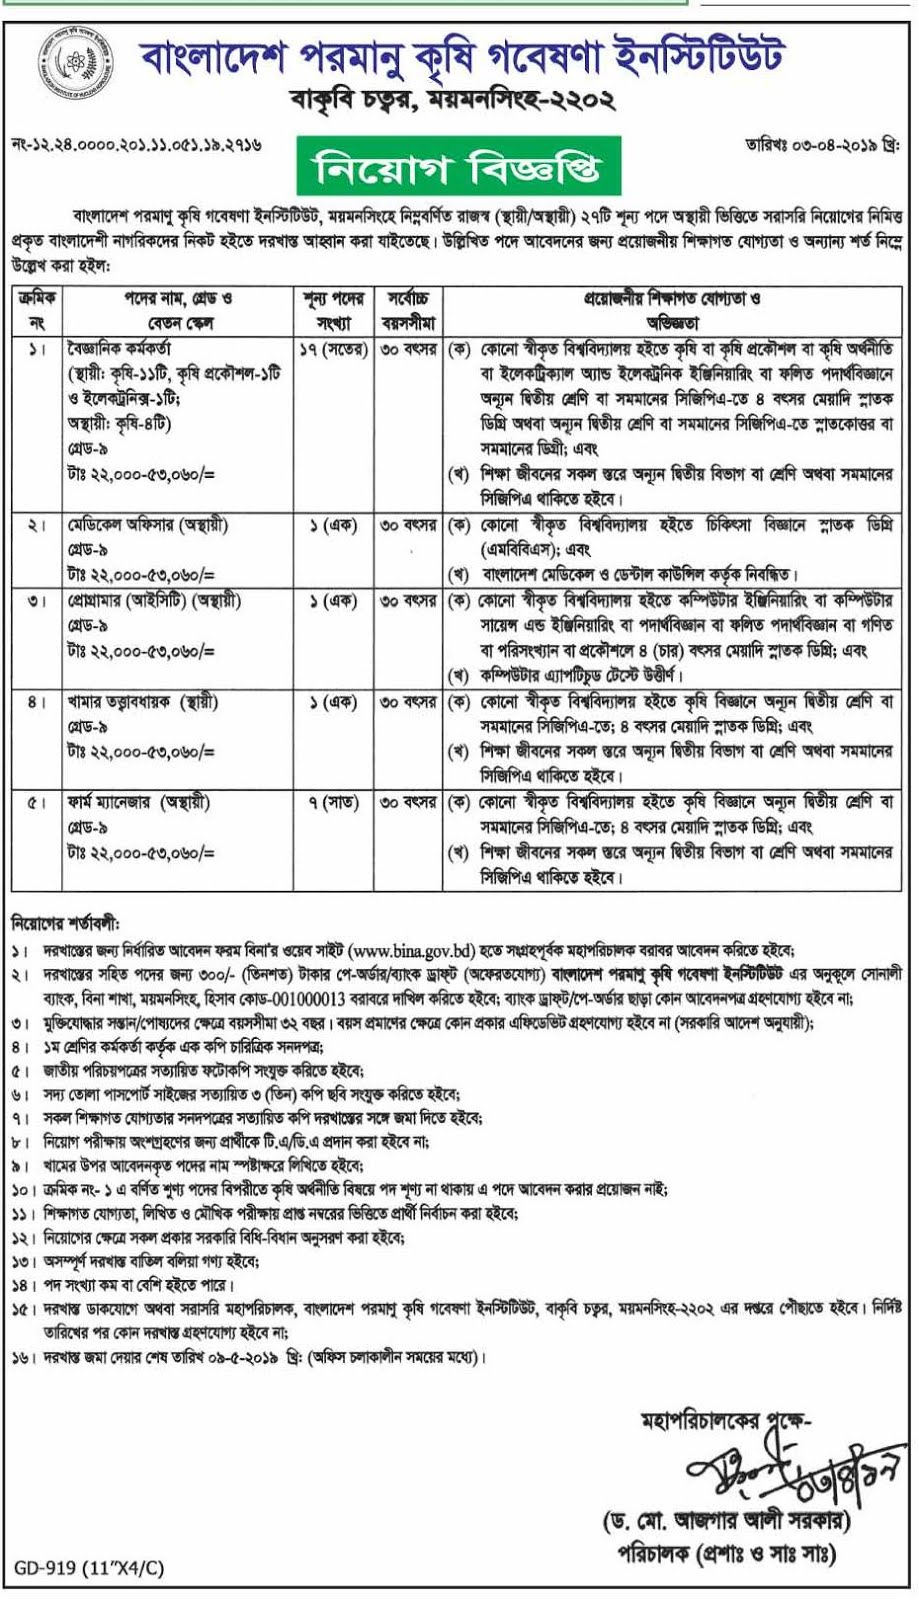 Bangladesh Institute of Nuclear Agriculture (BINA) New |